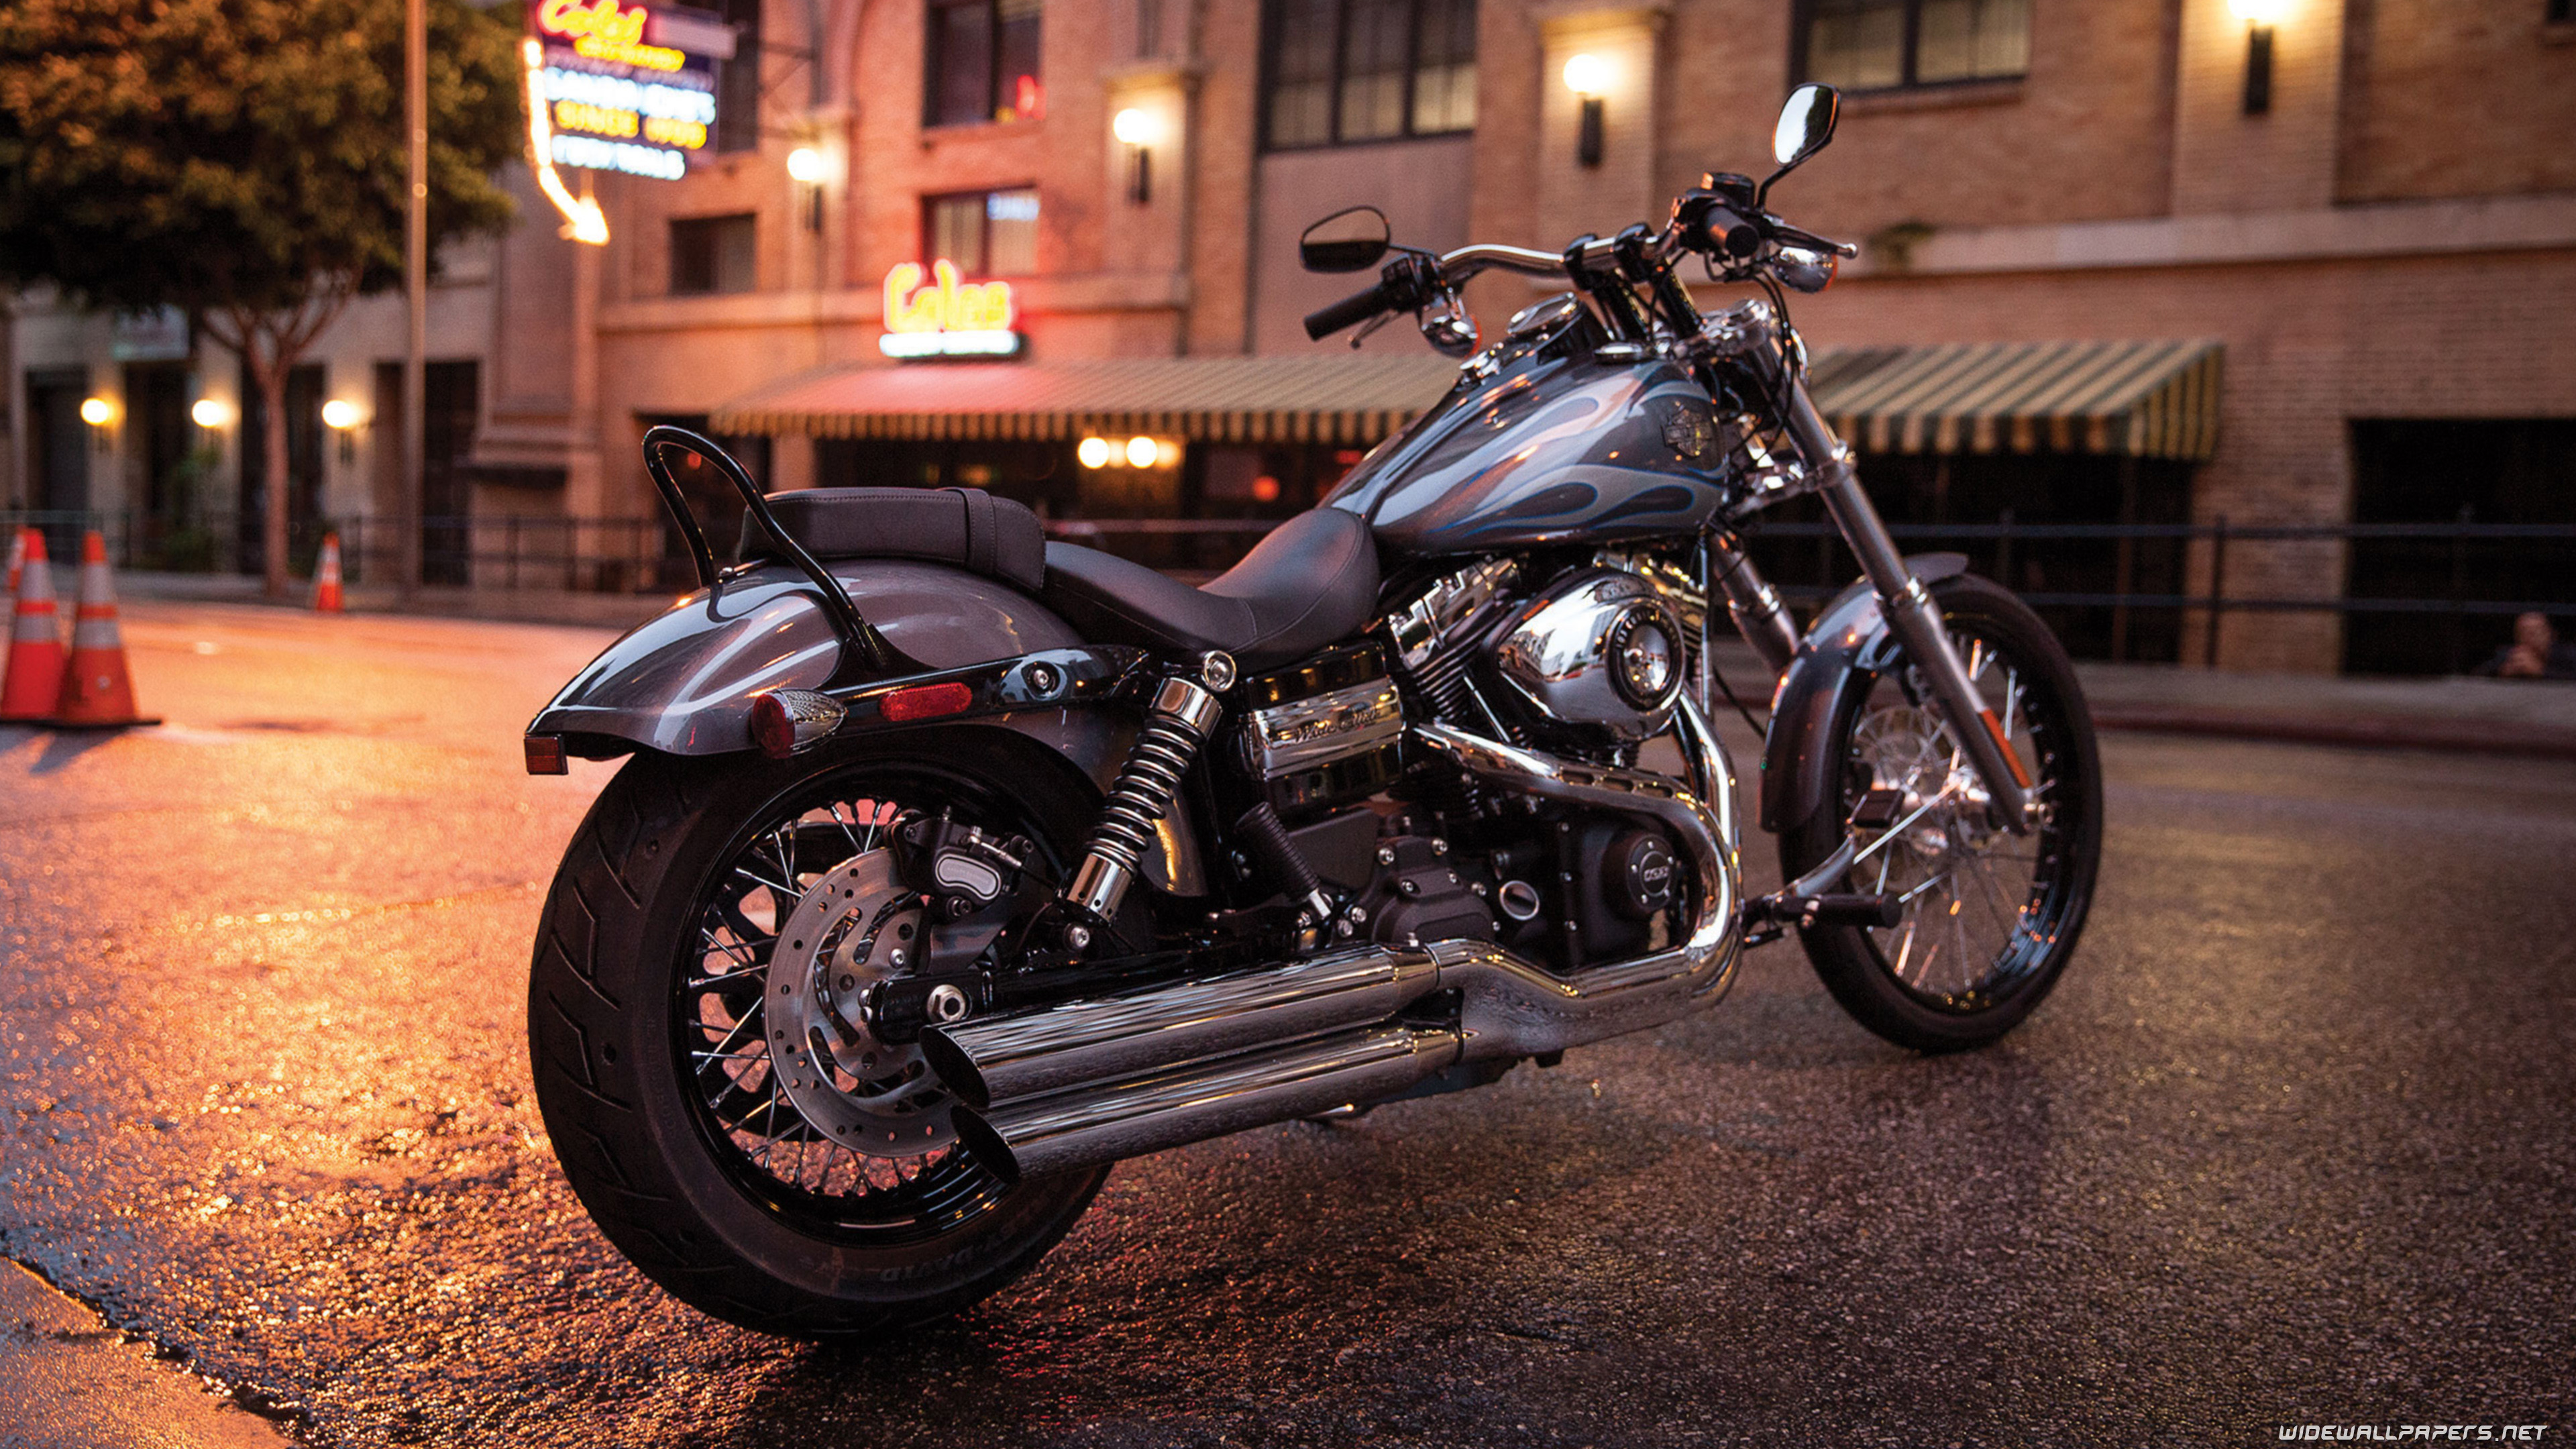 Harley Davidson Desktop Wallpaper (72+ images)